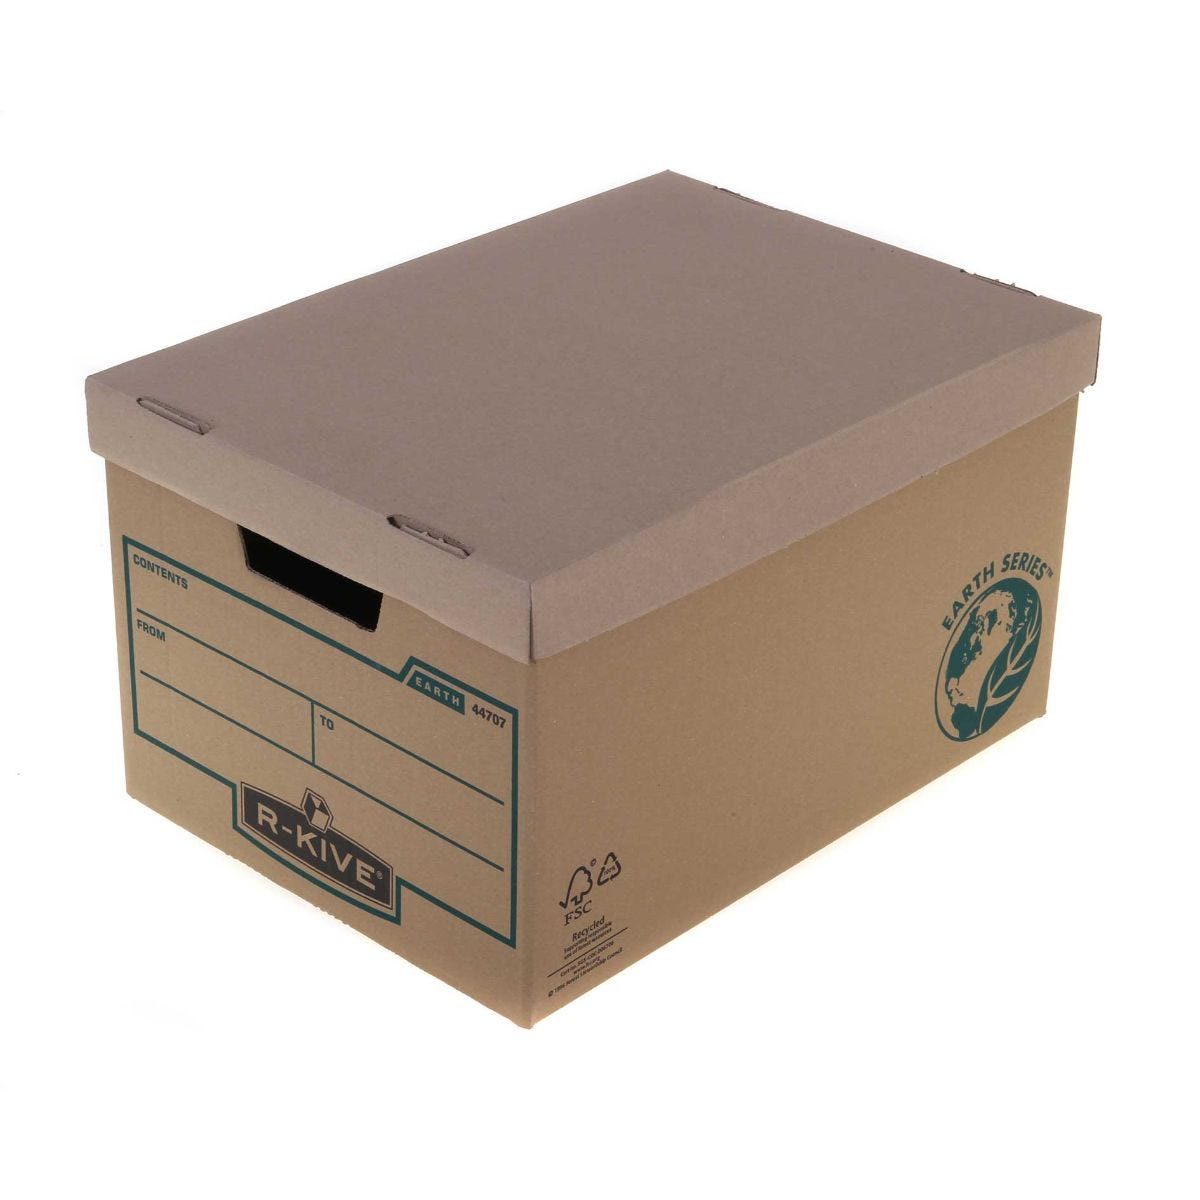 Image of Bankers Box Earth Series Large Storage Box